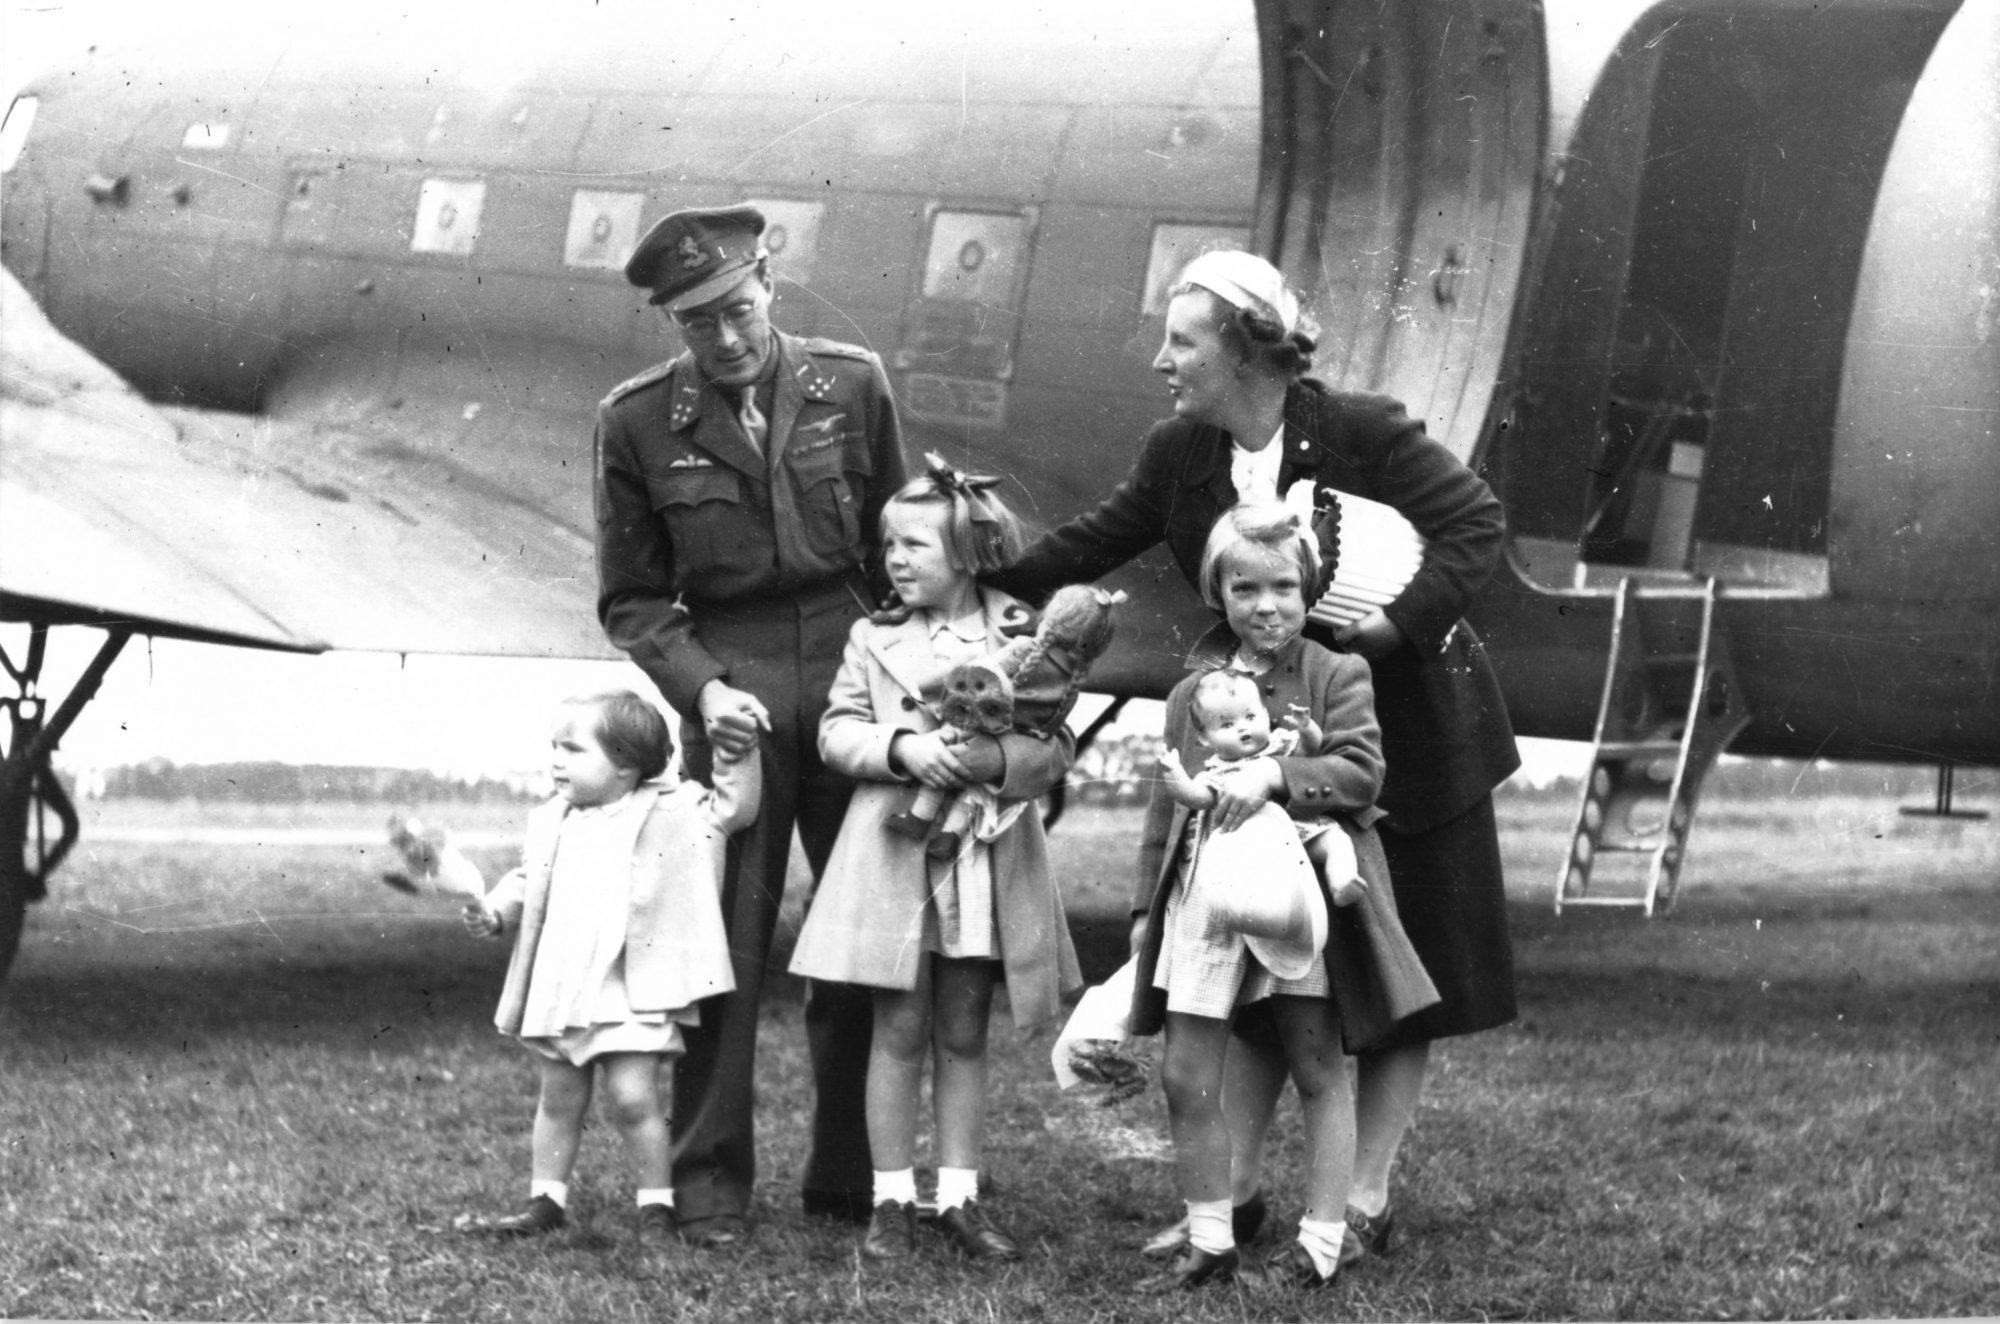 NETHERLANDS - 1945: Queen Juliana and Prince Bernhard with their children Princesses Margriet, Beatrix and Irene return to the Netherlands from Canada where they lived in exile during World War II, 1945 in Netherlands. (Photo by Gamma-Keystone via Getty Images)